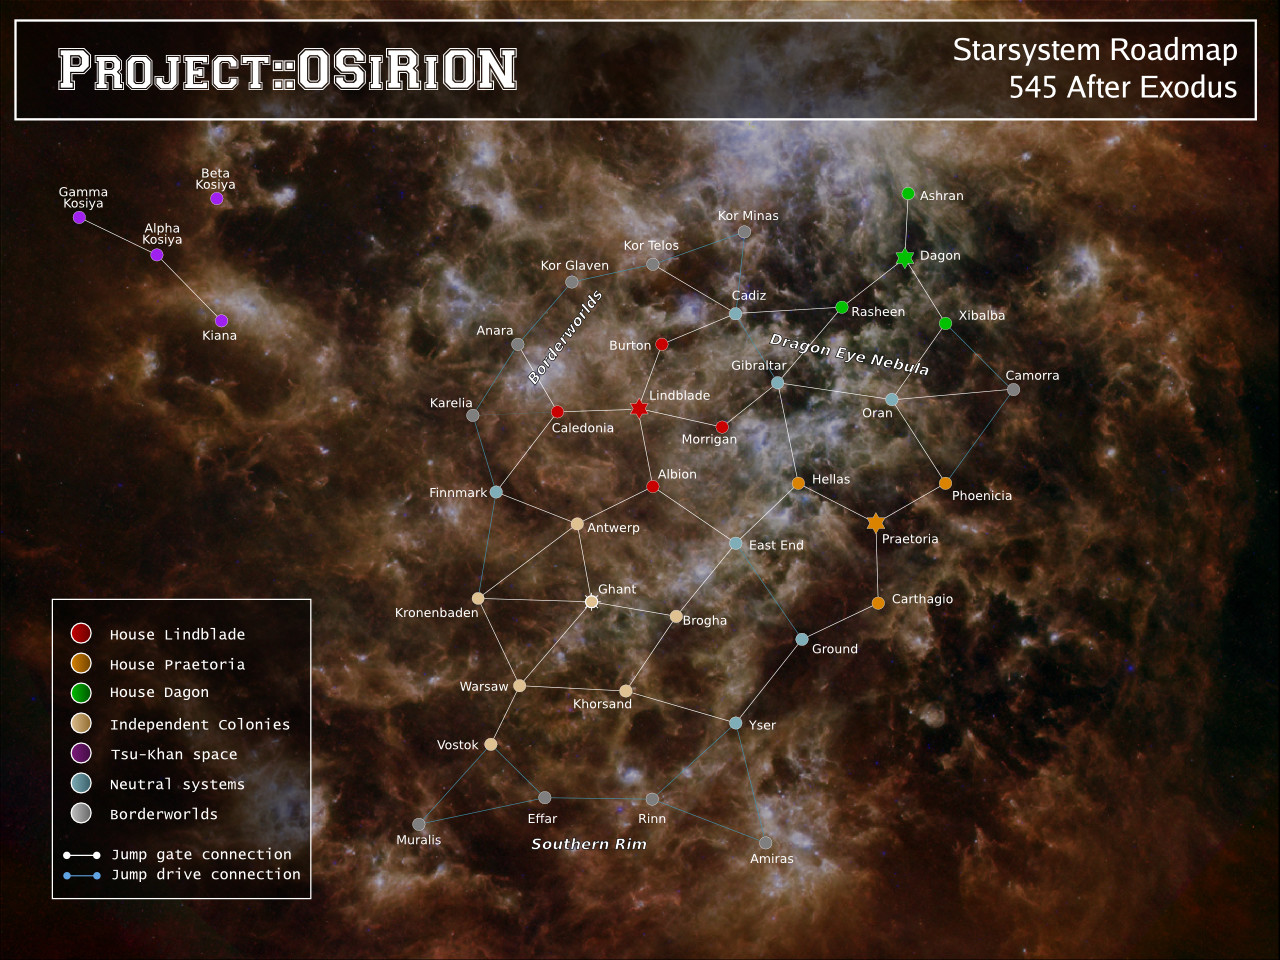 Starsystem Roadmap.jpg